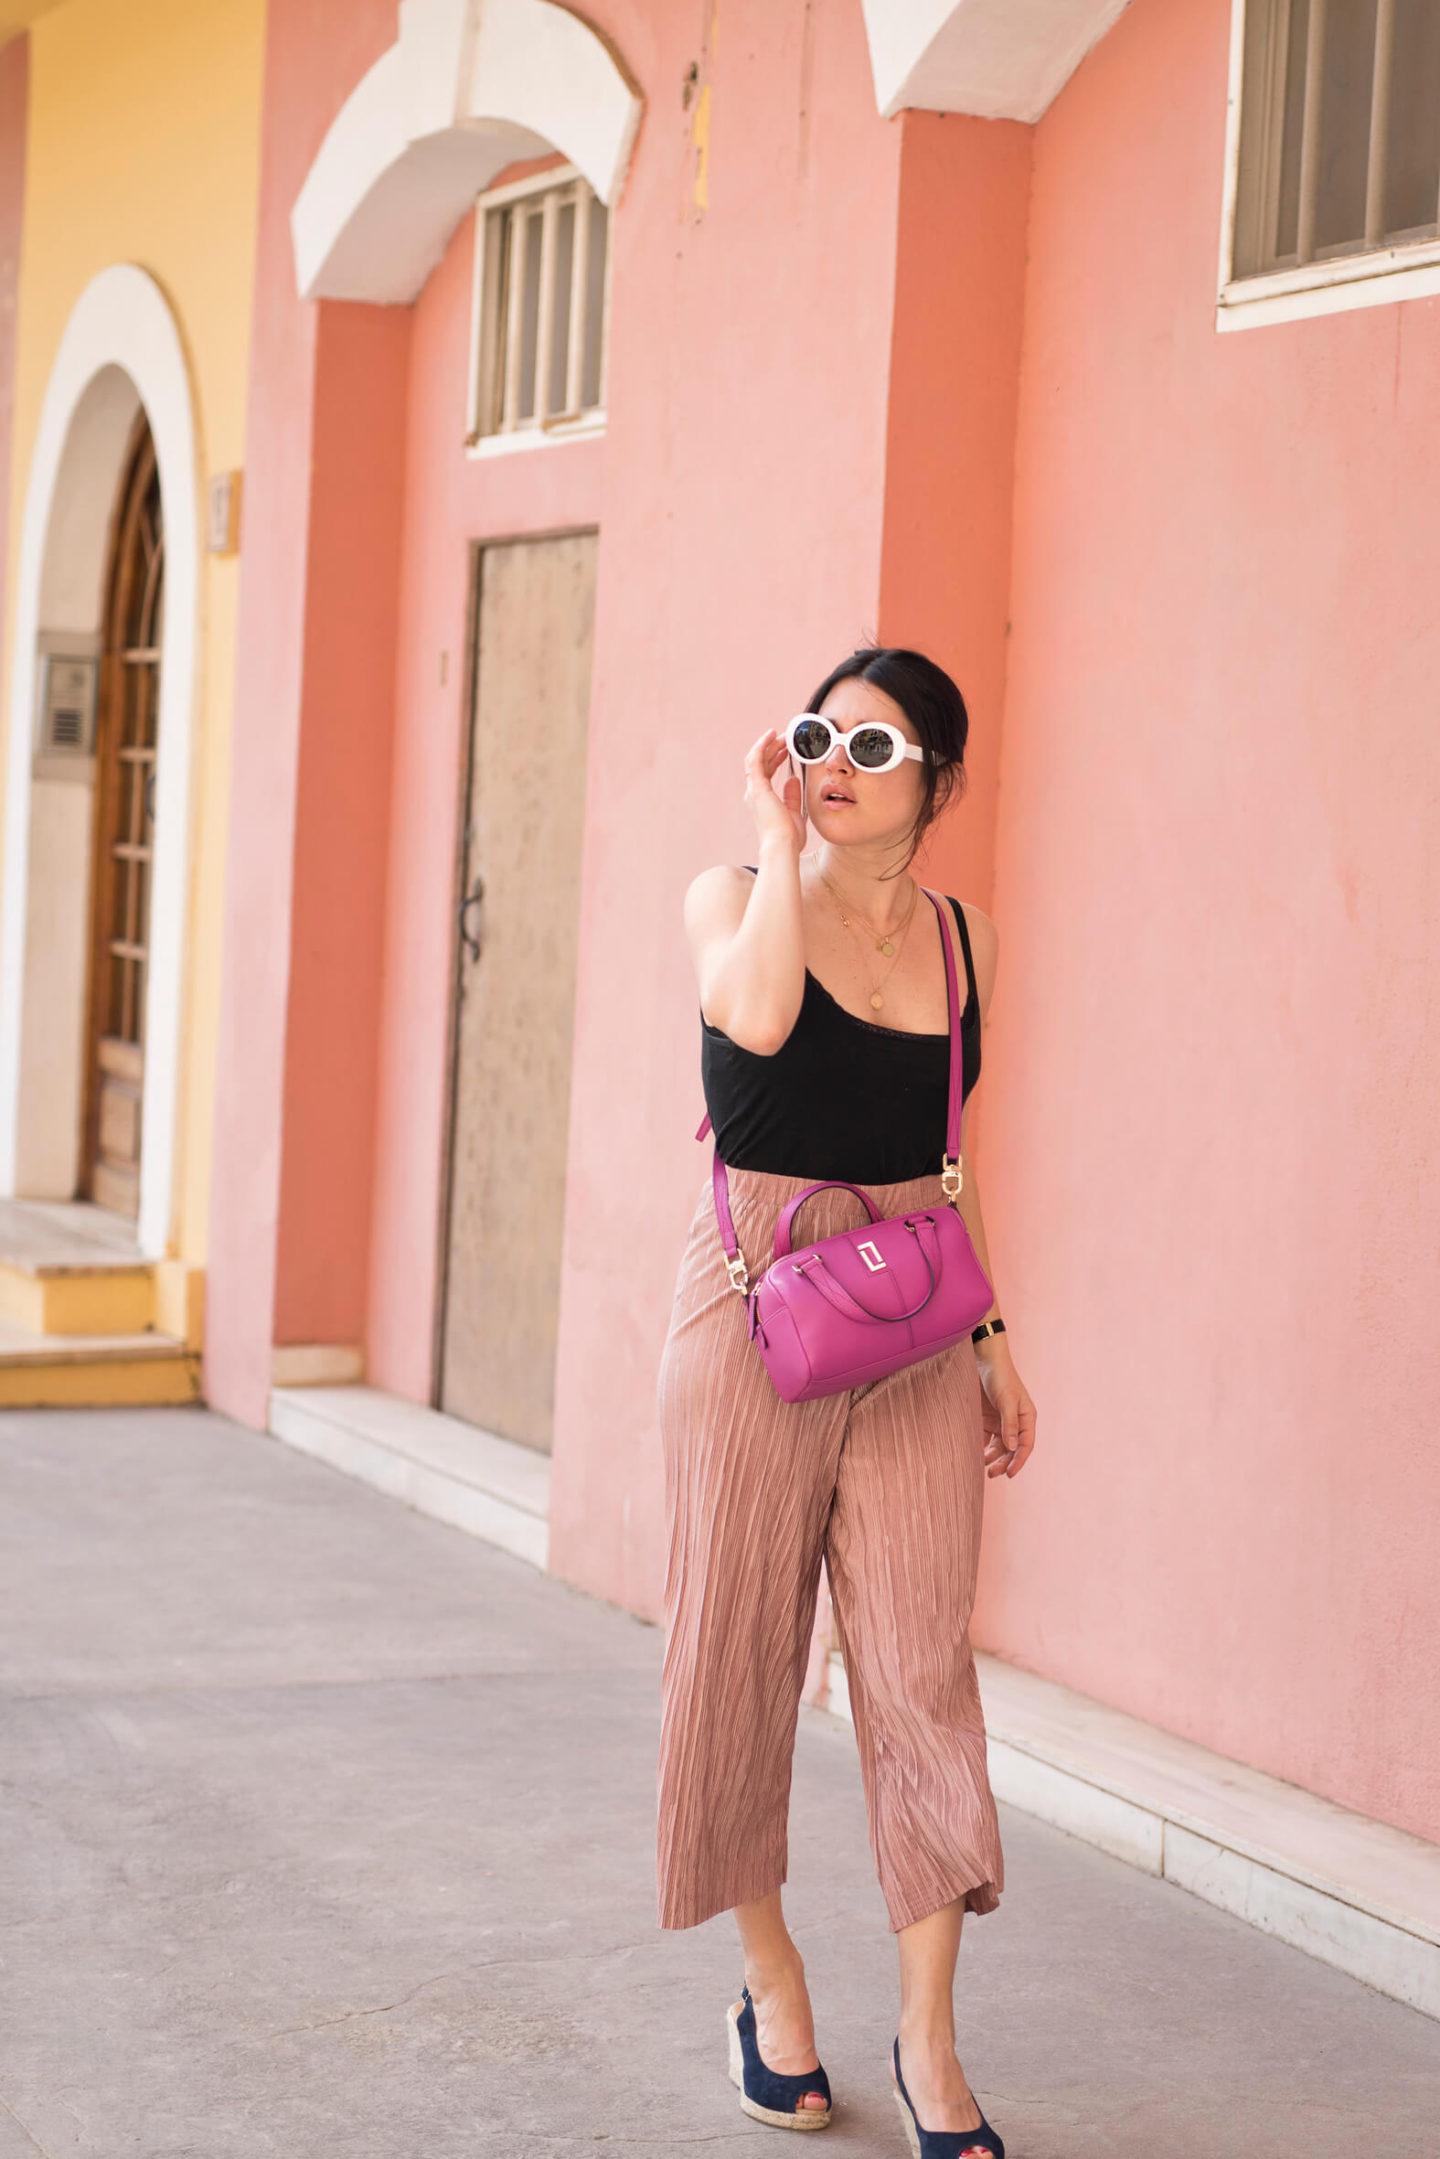 Jupe culotte rose look de printemps L'atelier d'al blog mode lifestyle Paris